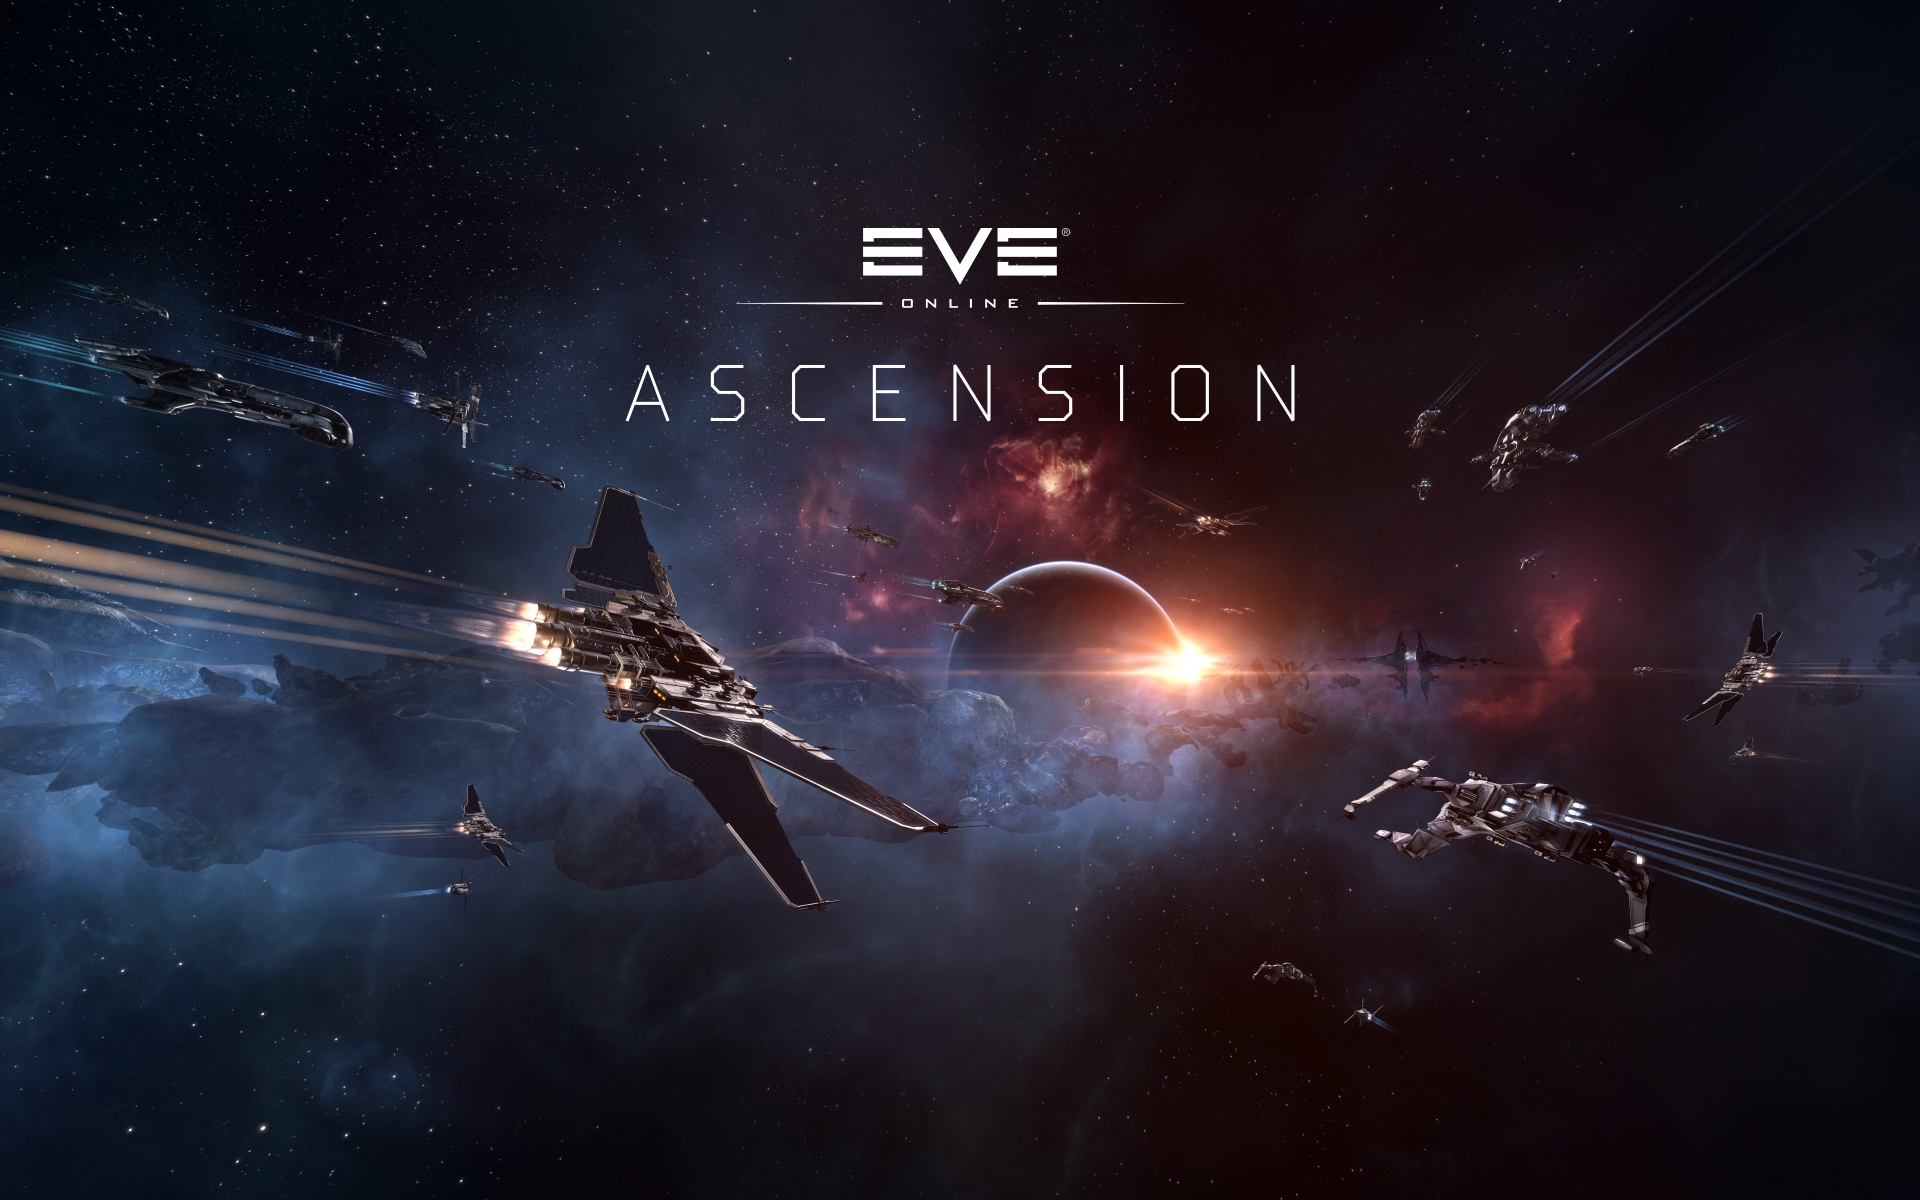 Download Eve Online Live Wallpaper Gallery